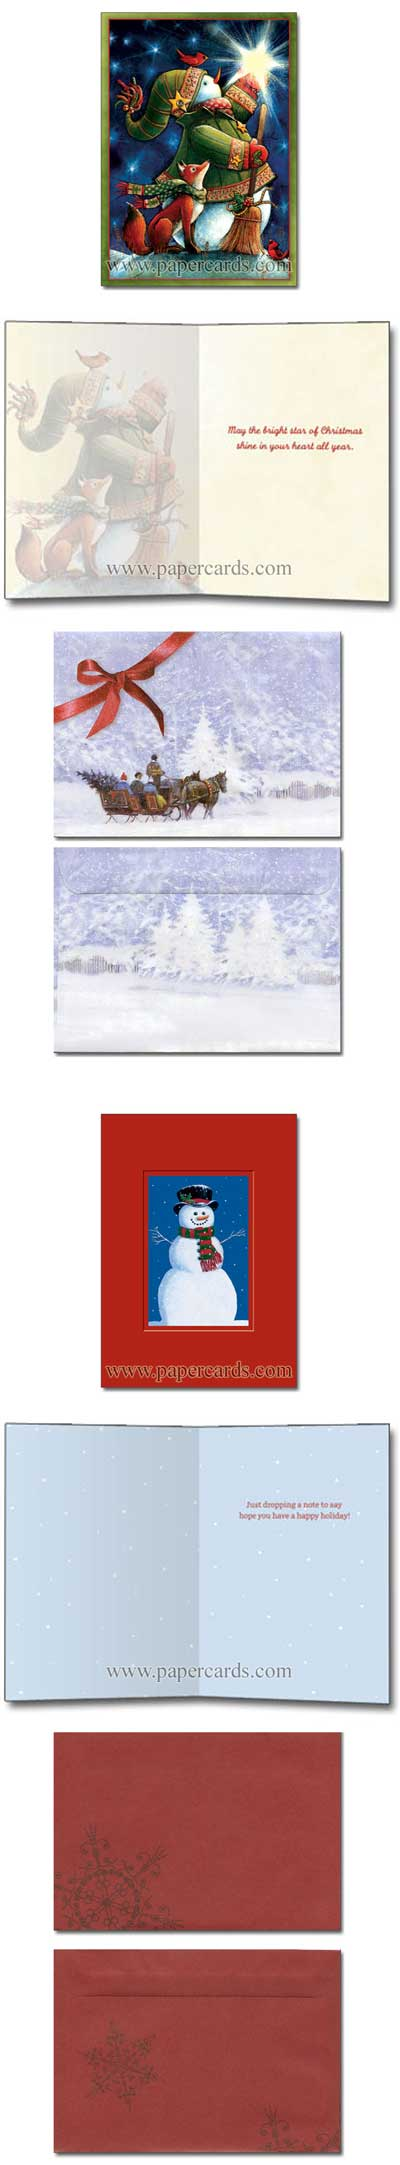 Snowmen & Friends (24 cards/24 envelopes) Tree-Free Greetings Boxed Christmas Cards